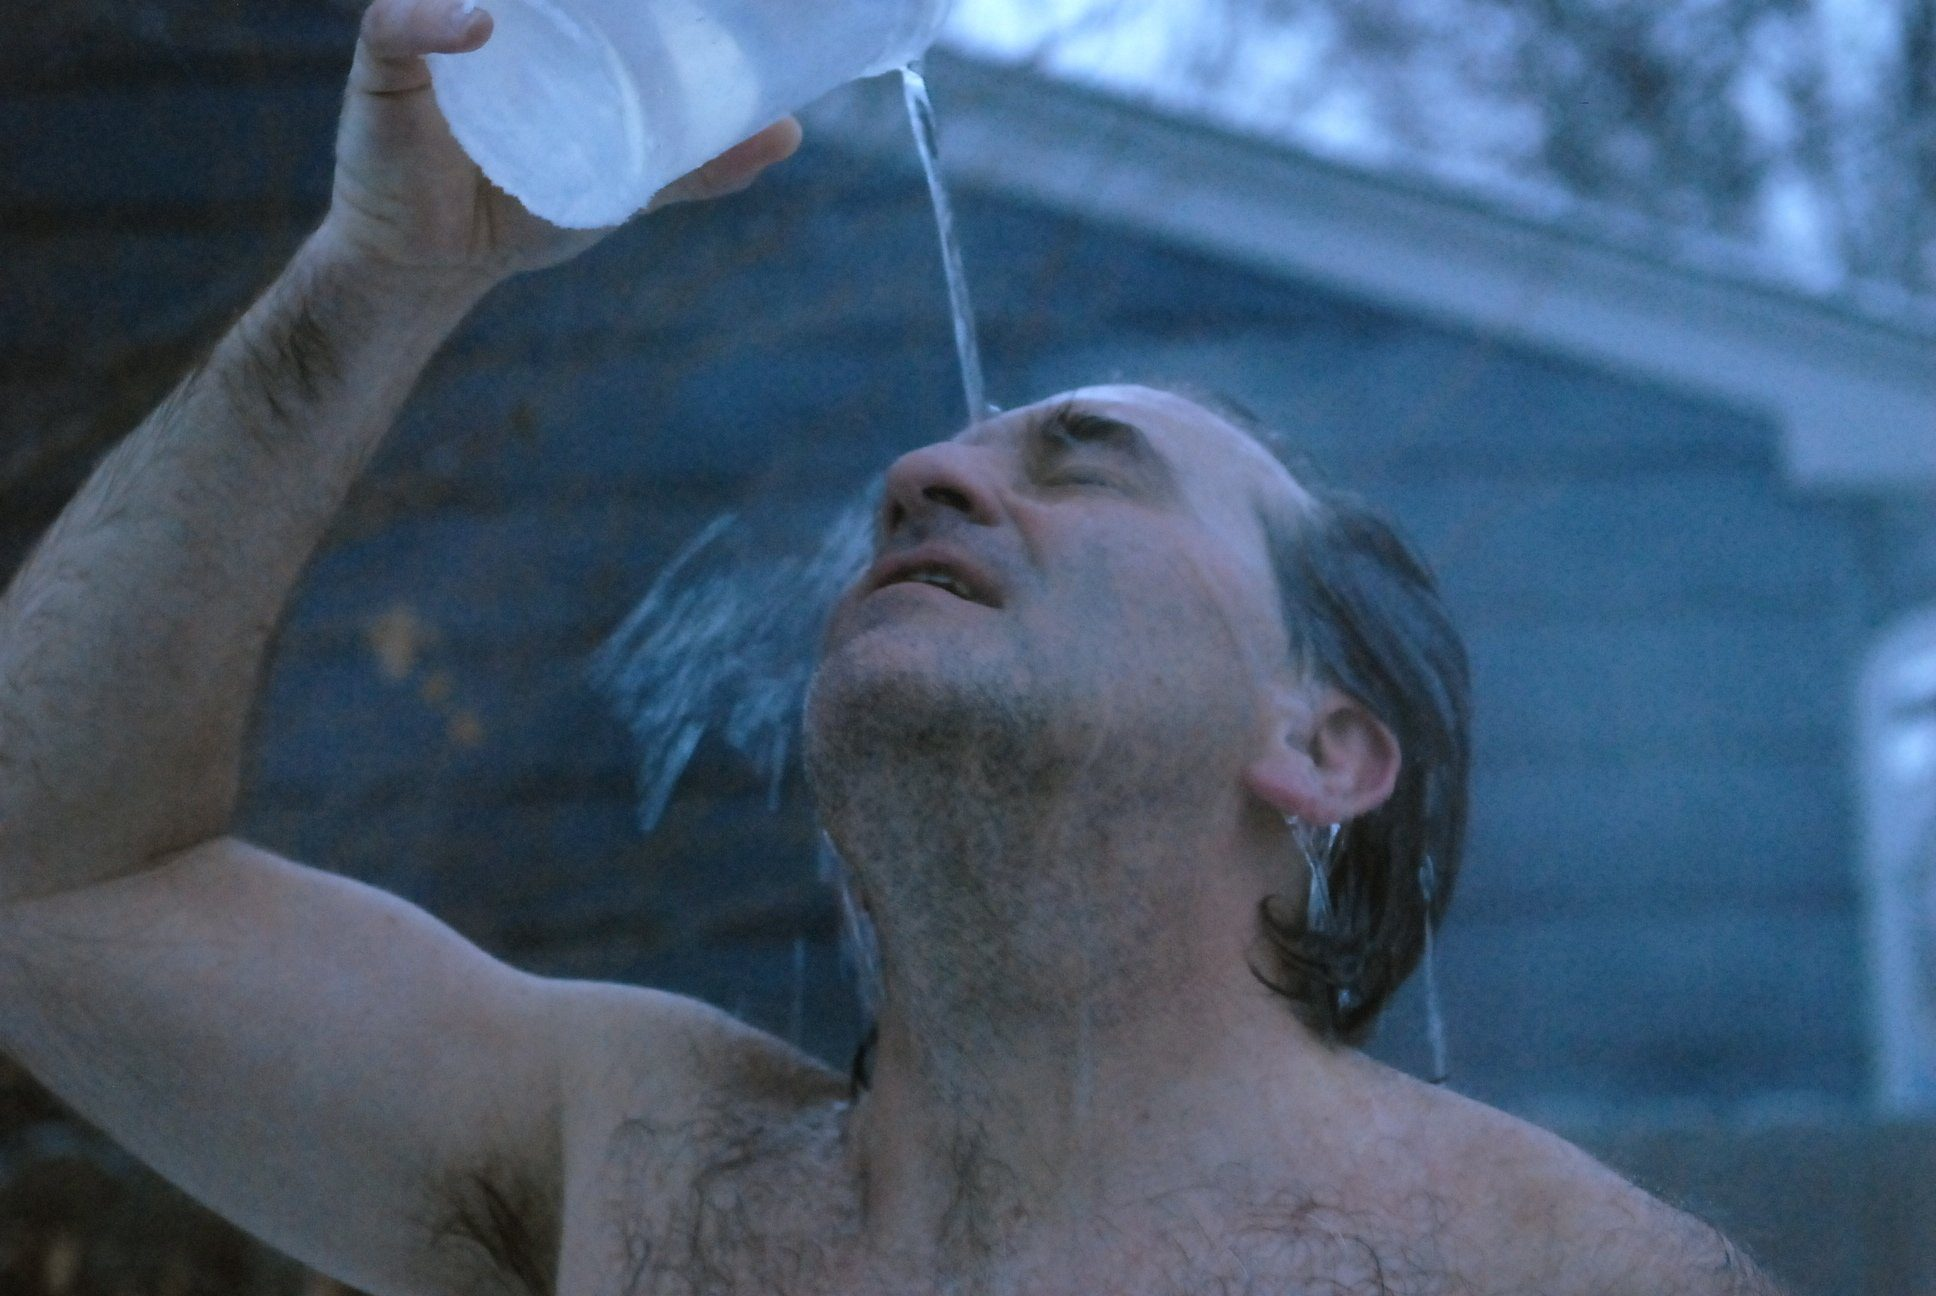 pouring-water-on-yourself-after-a-sauna